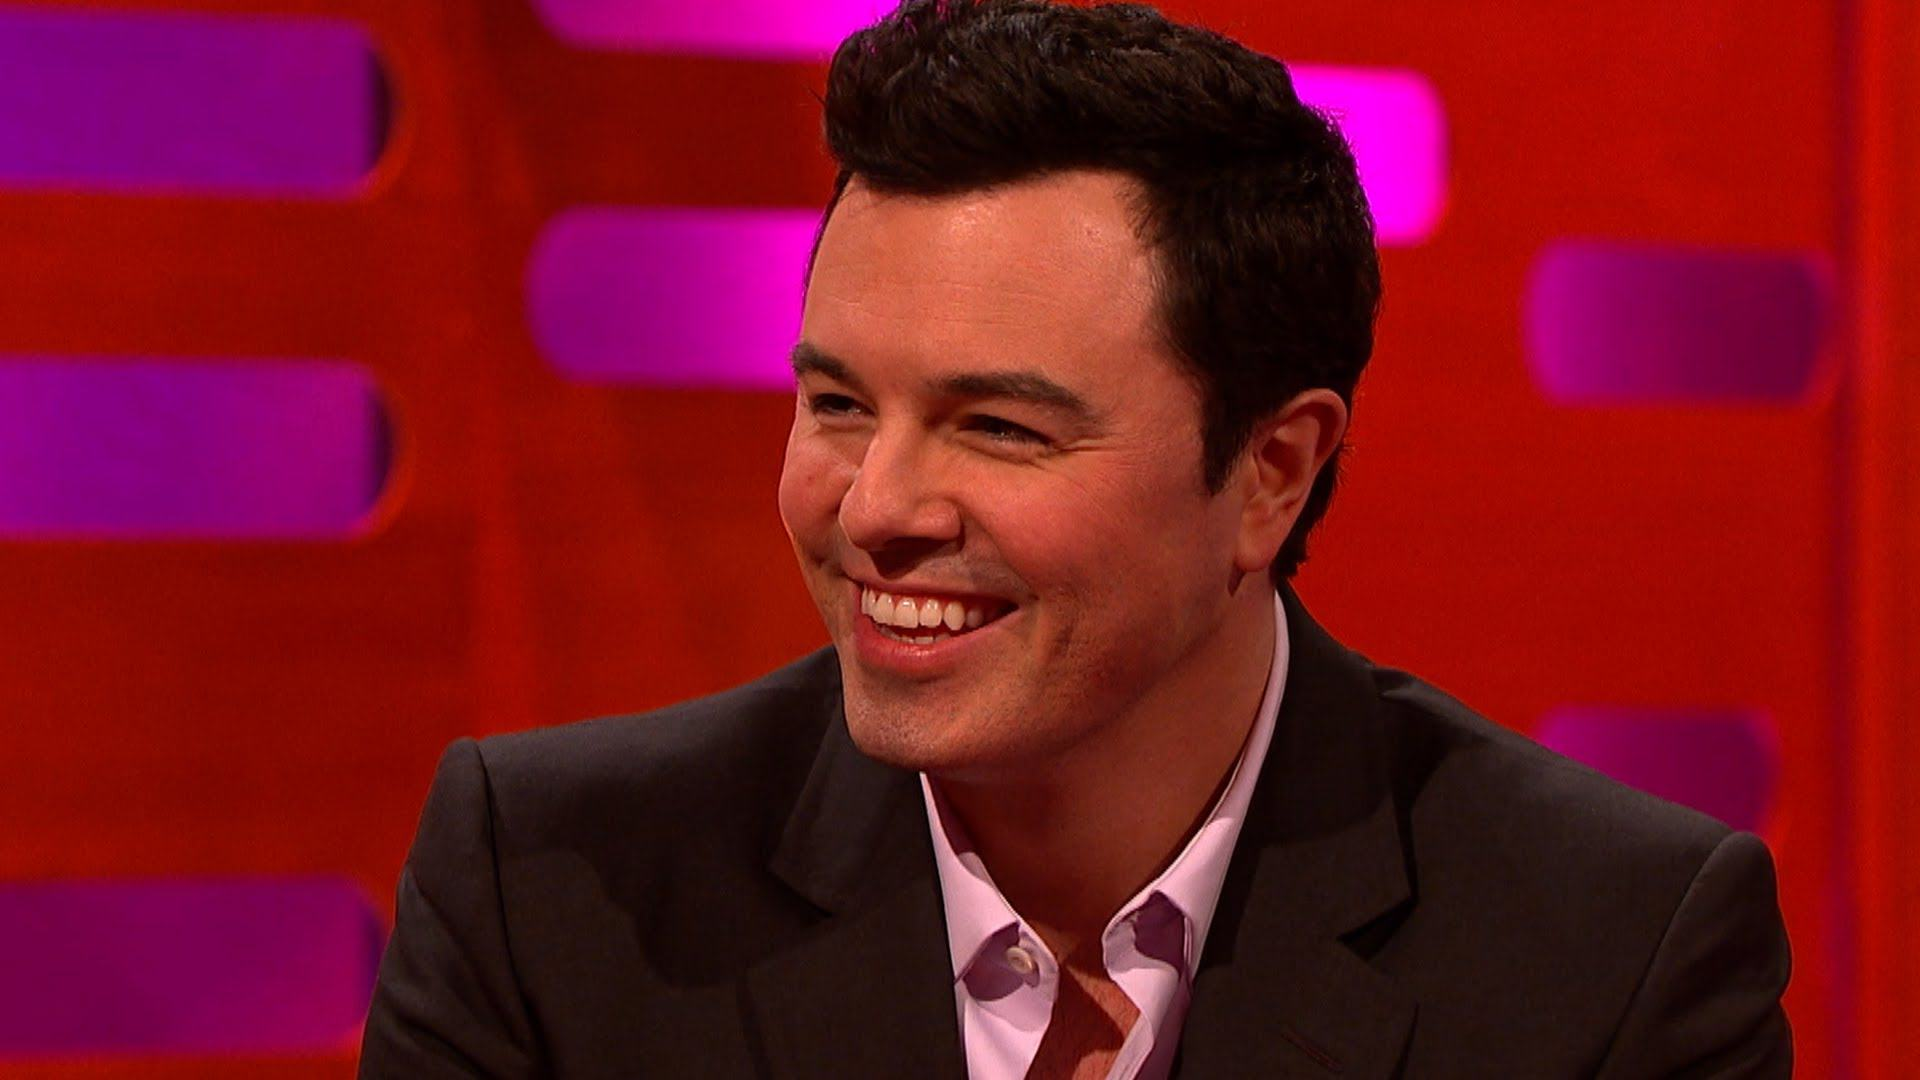 Family Guy And American Dad Officially Move To ITV seth mcfarlane performs his fami